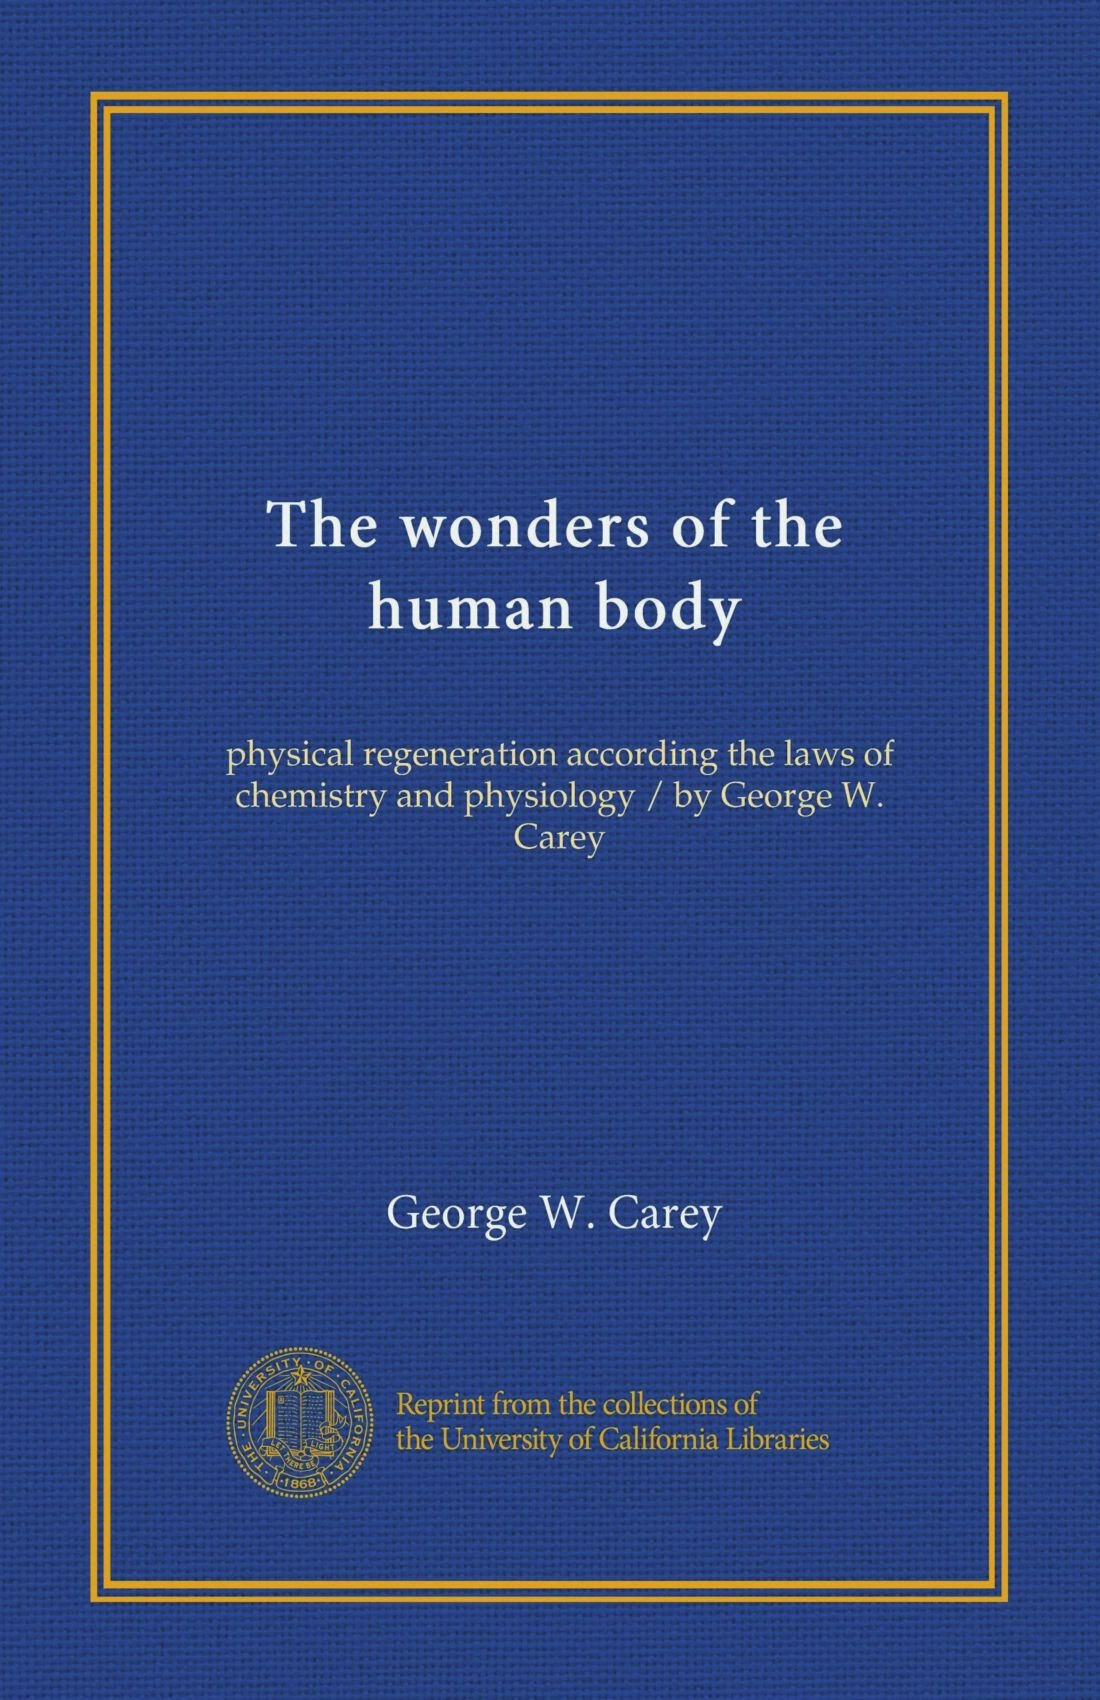 The wonders of the human body: physical regeneration according the